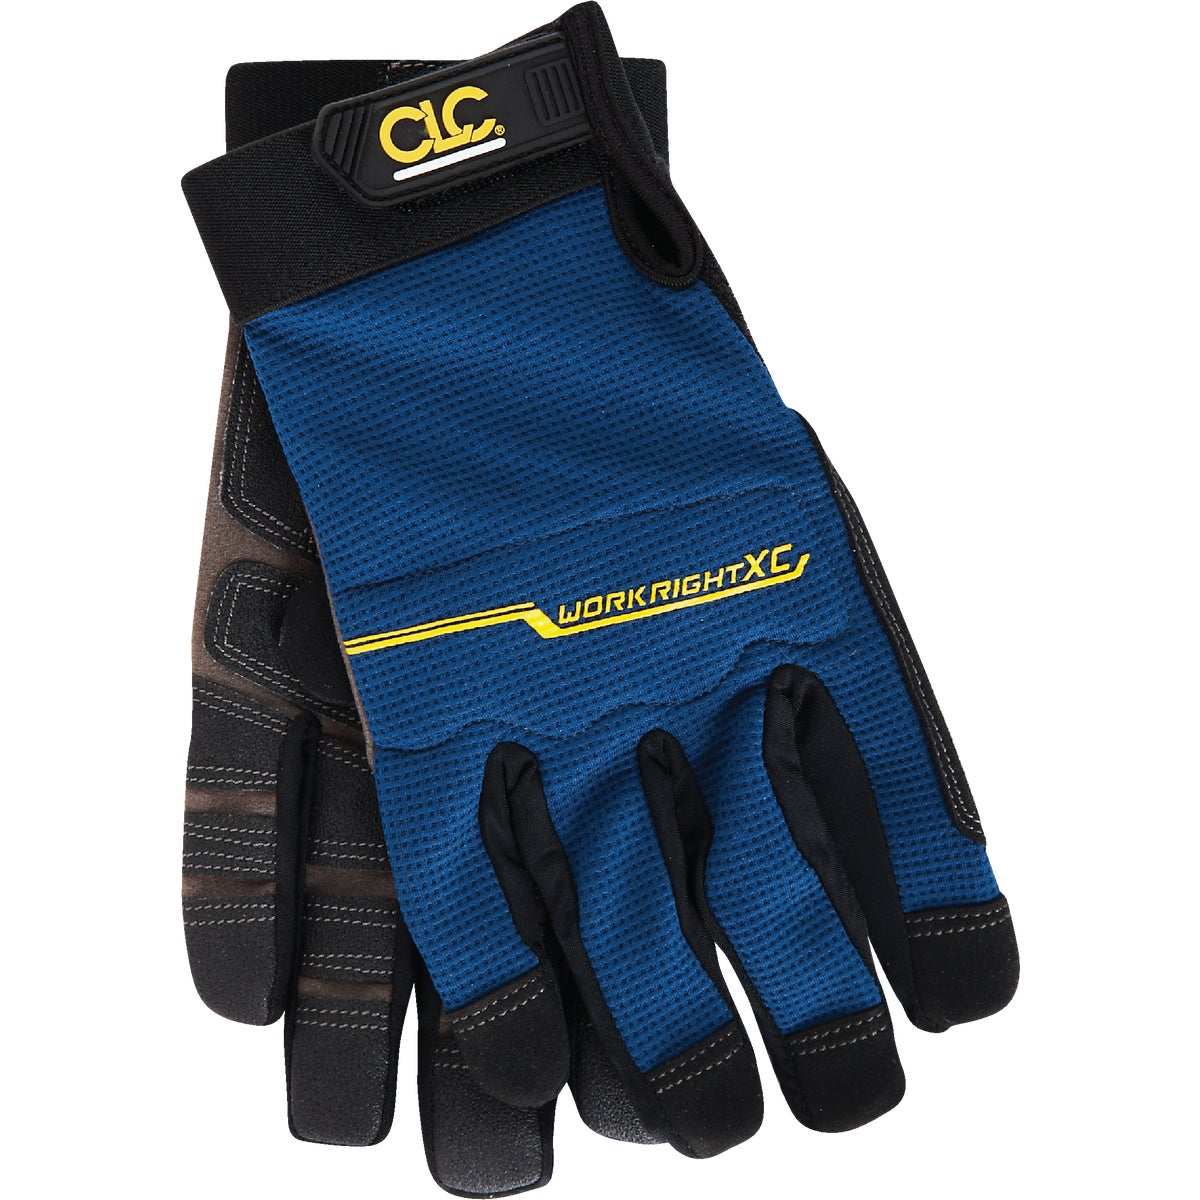 XL WORKRIGHT XC GLOVE - 126XL by Custom Leathercraft